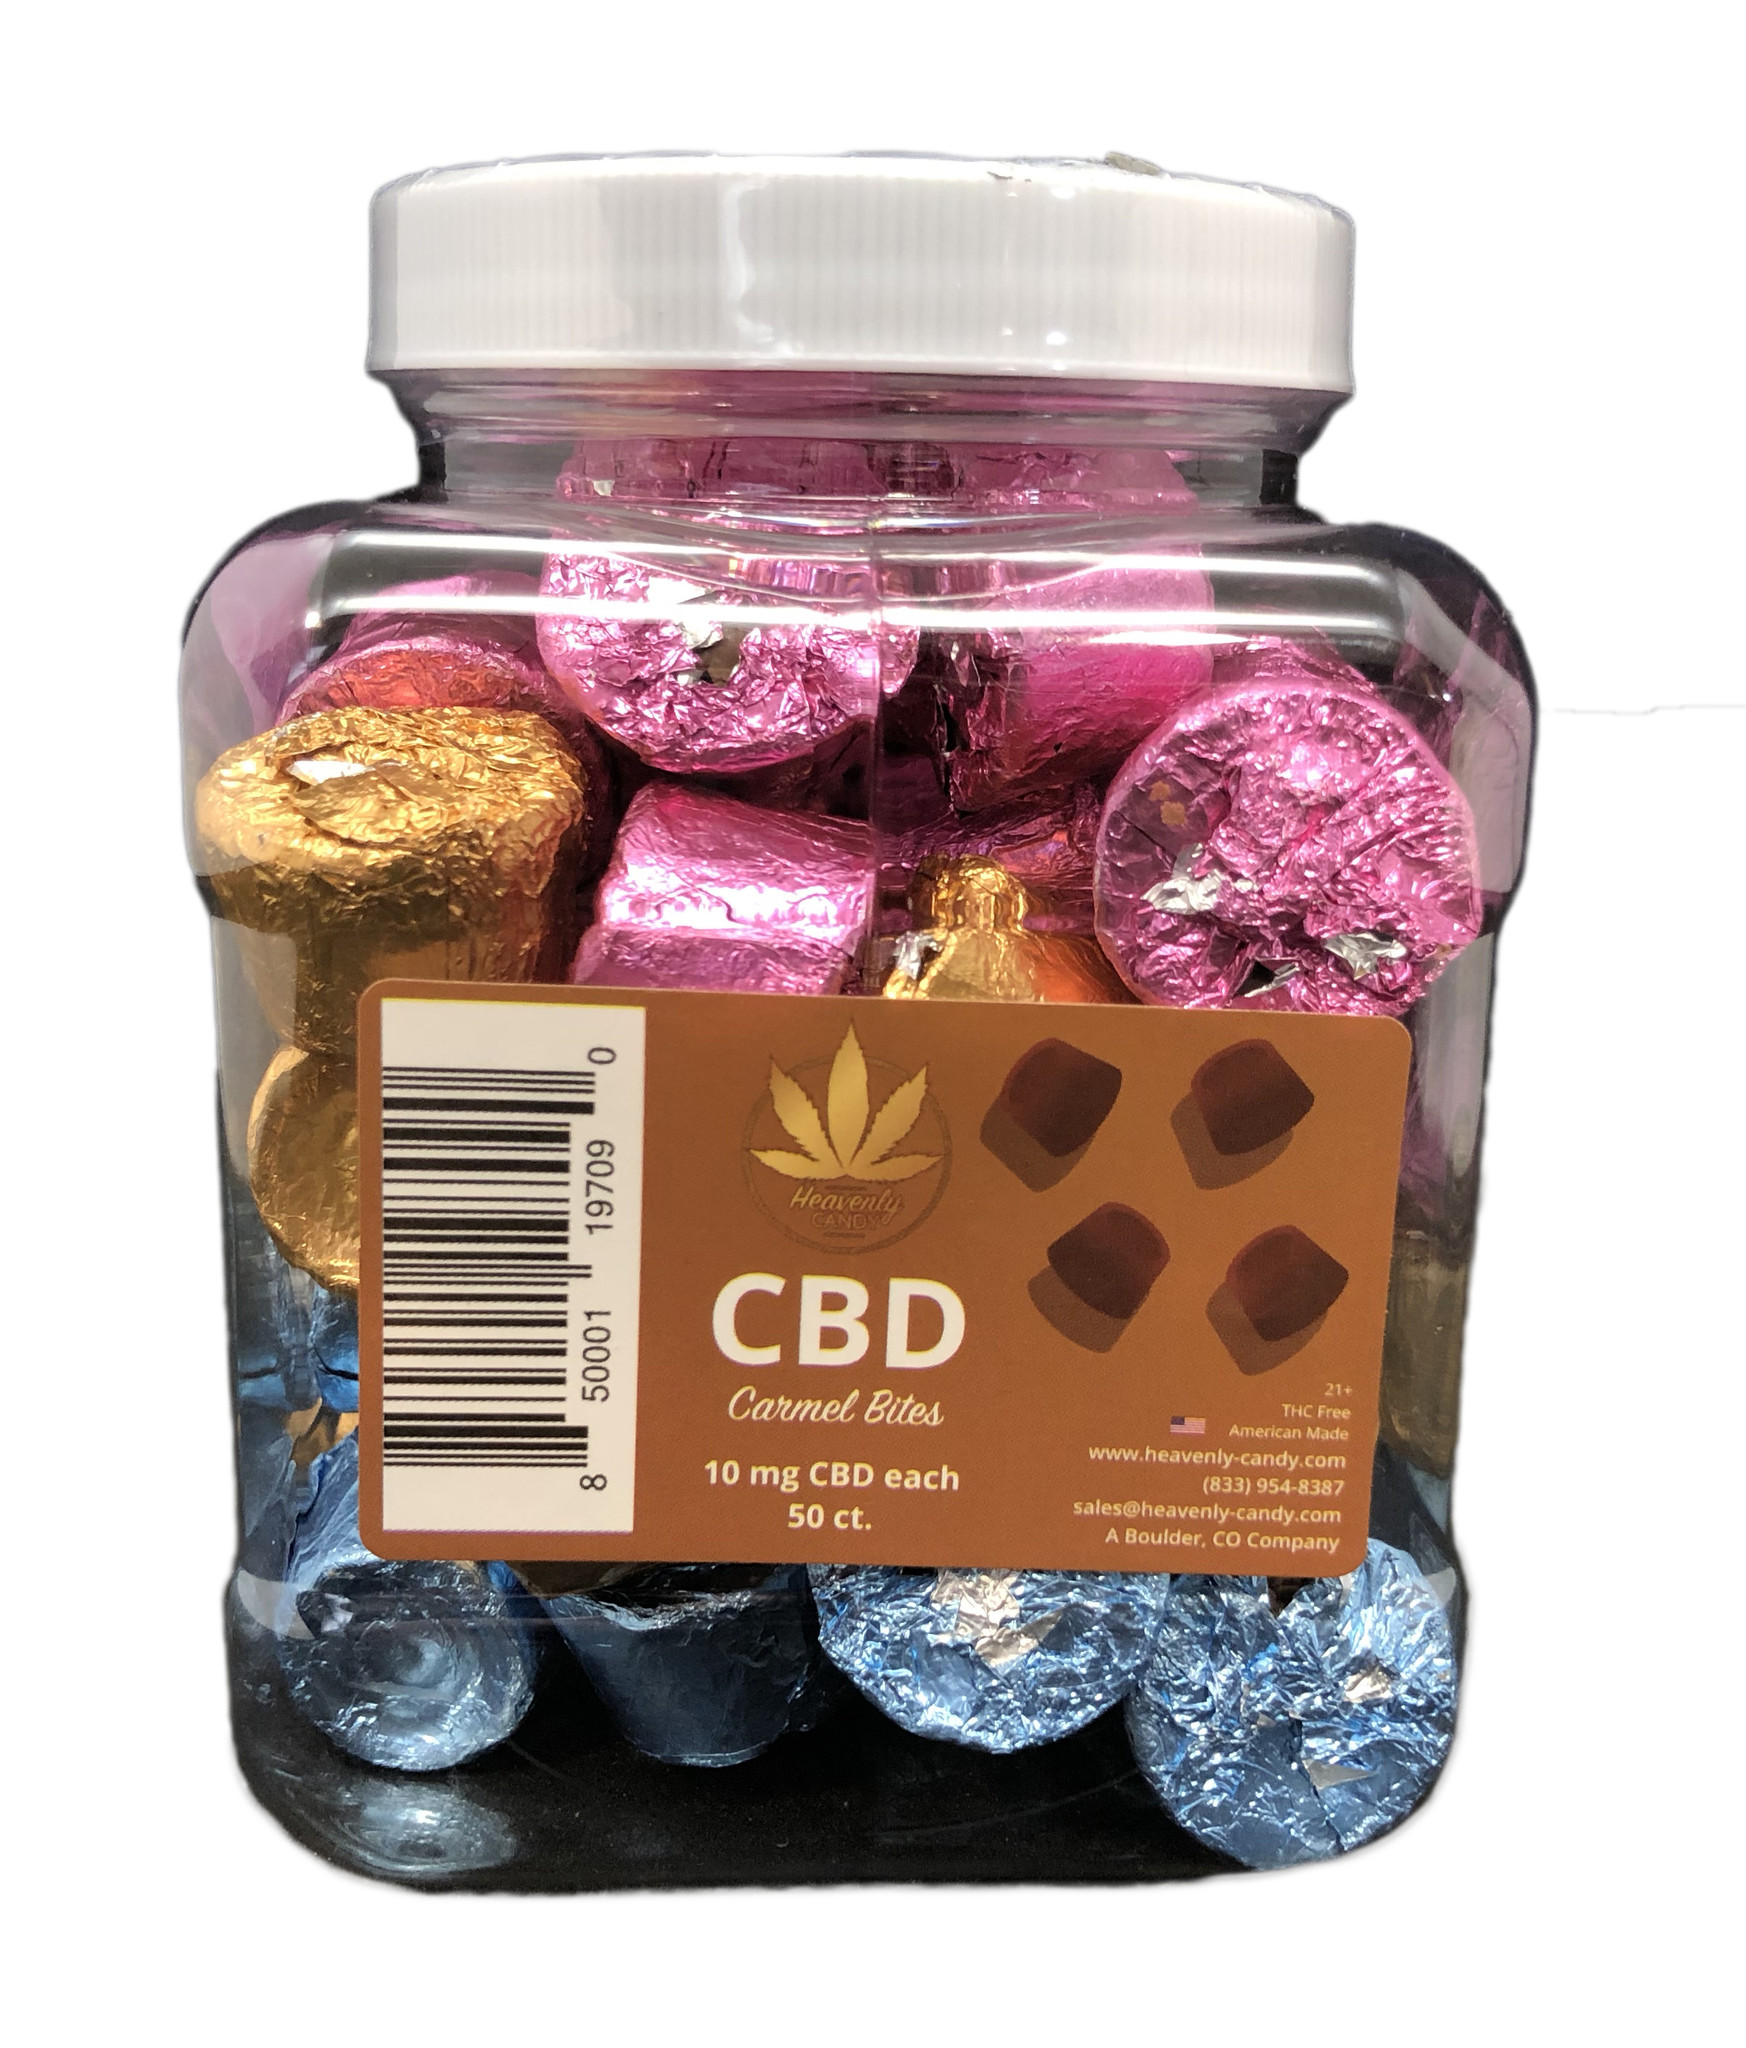 Heavenly Candy CHOCOLATE CARAMEL BITES | 10mg per PIECE | 50 PIECES